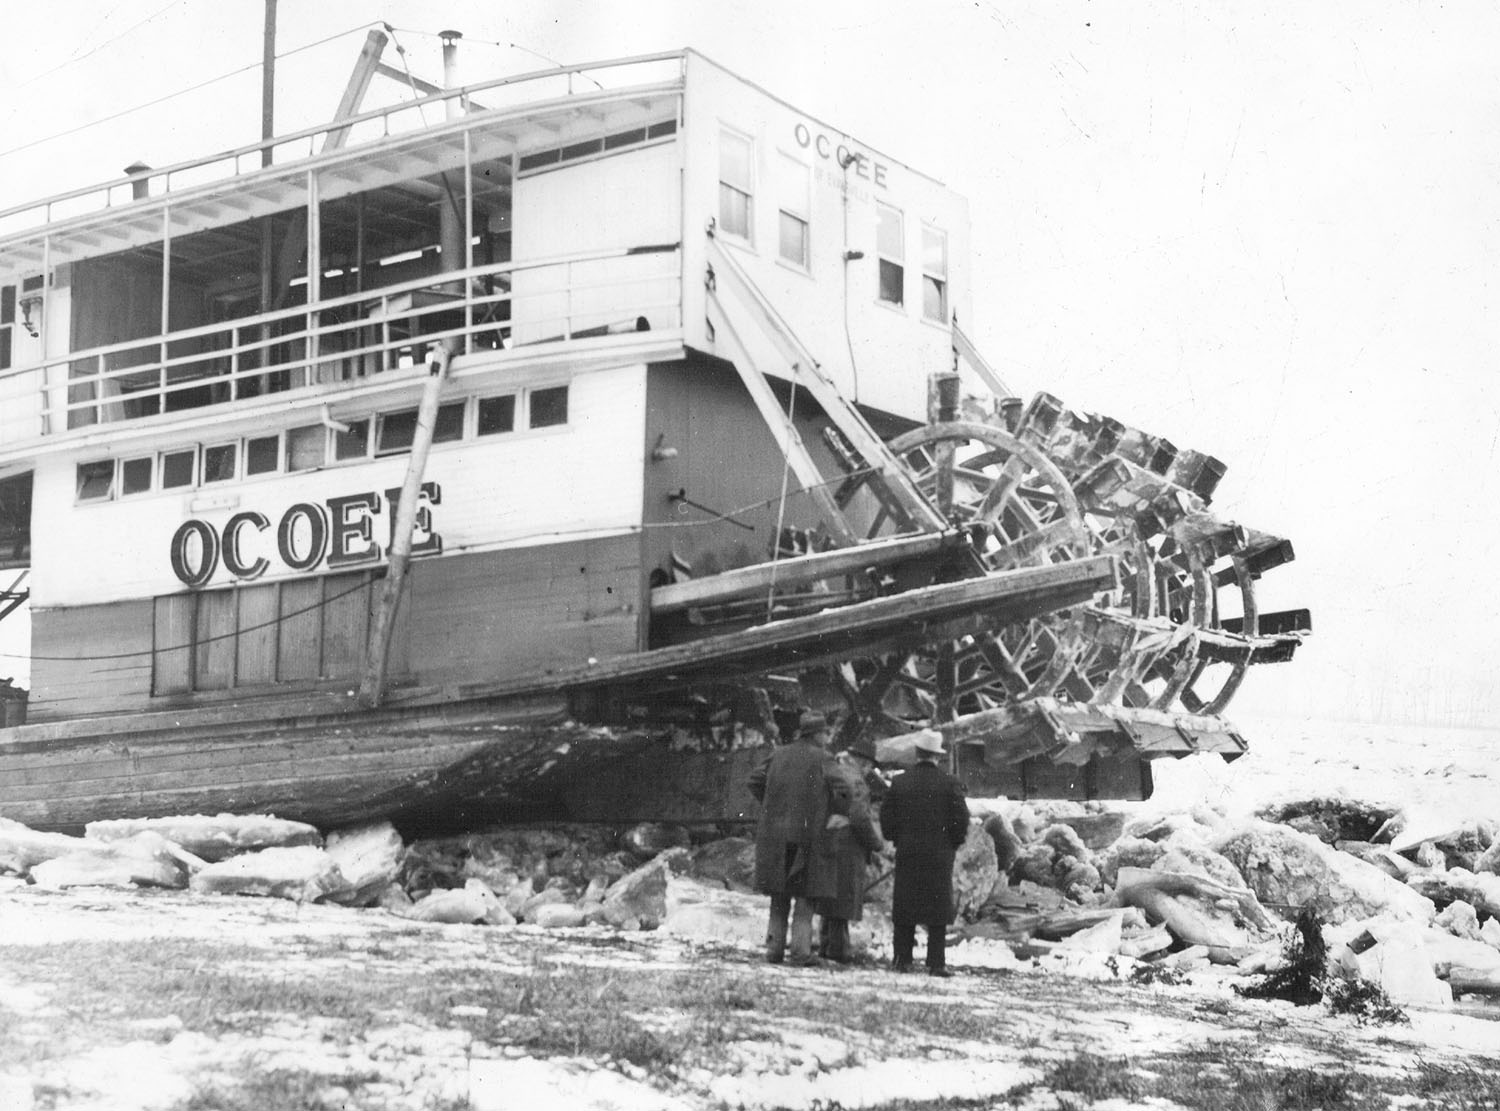 The Ocoee after being pushed ashore by the 1936 ice gorge. (Keith Norrington collection)